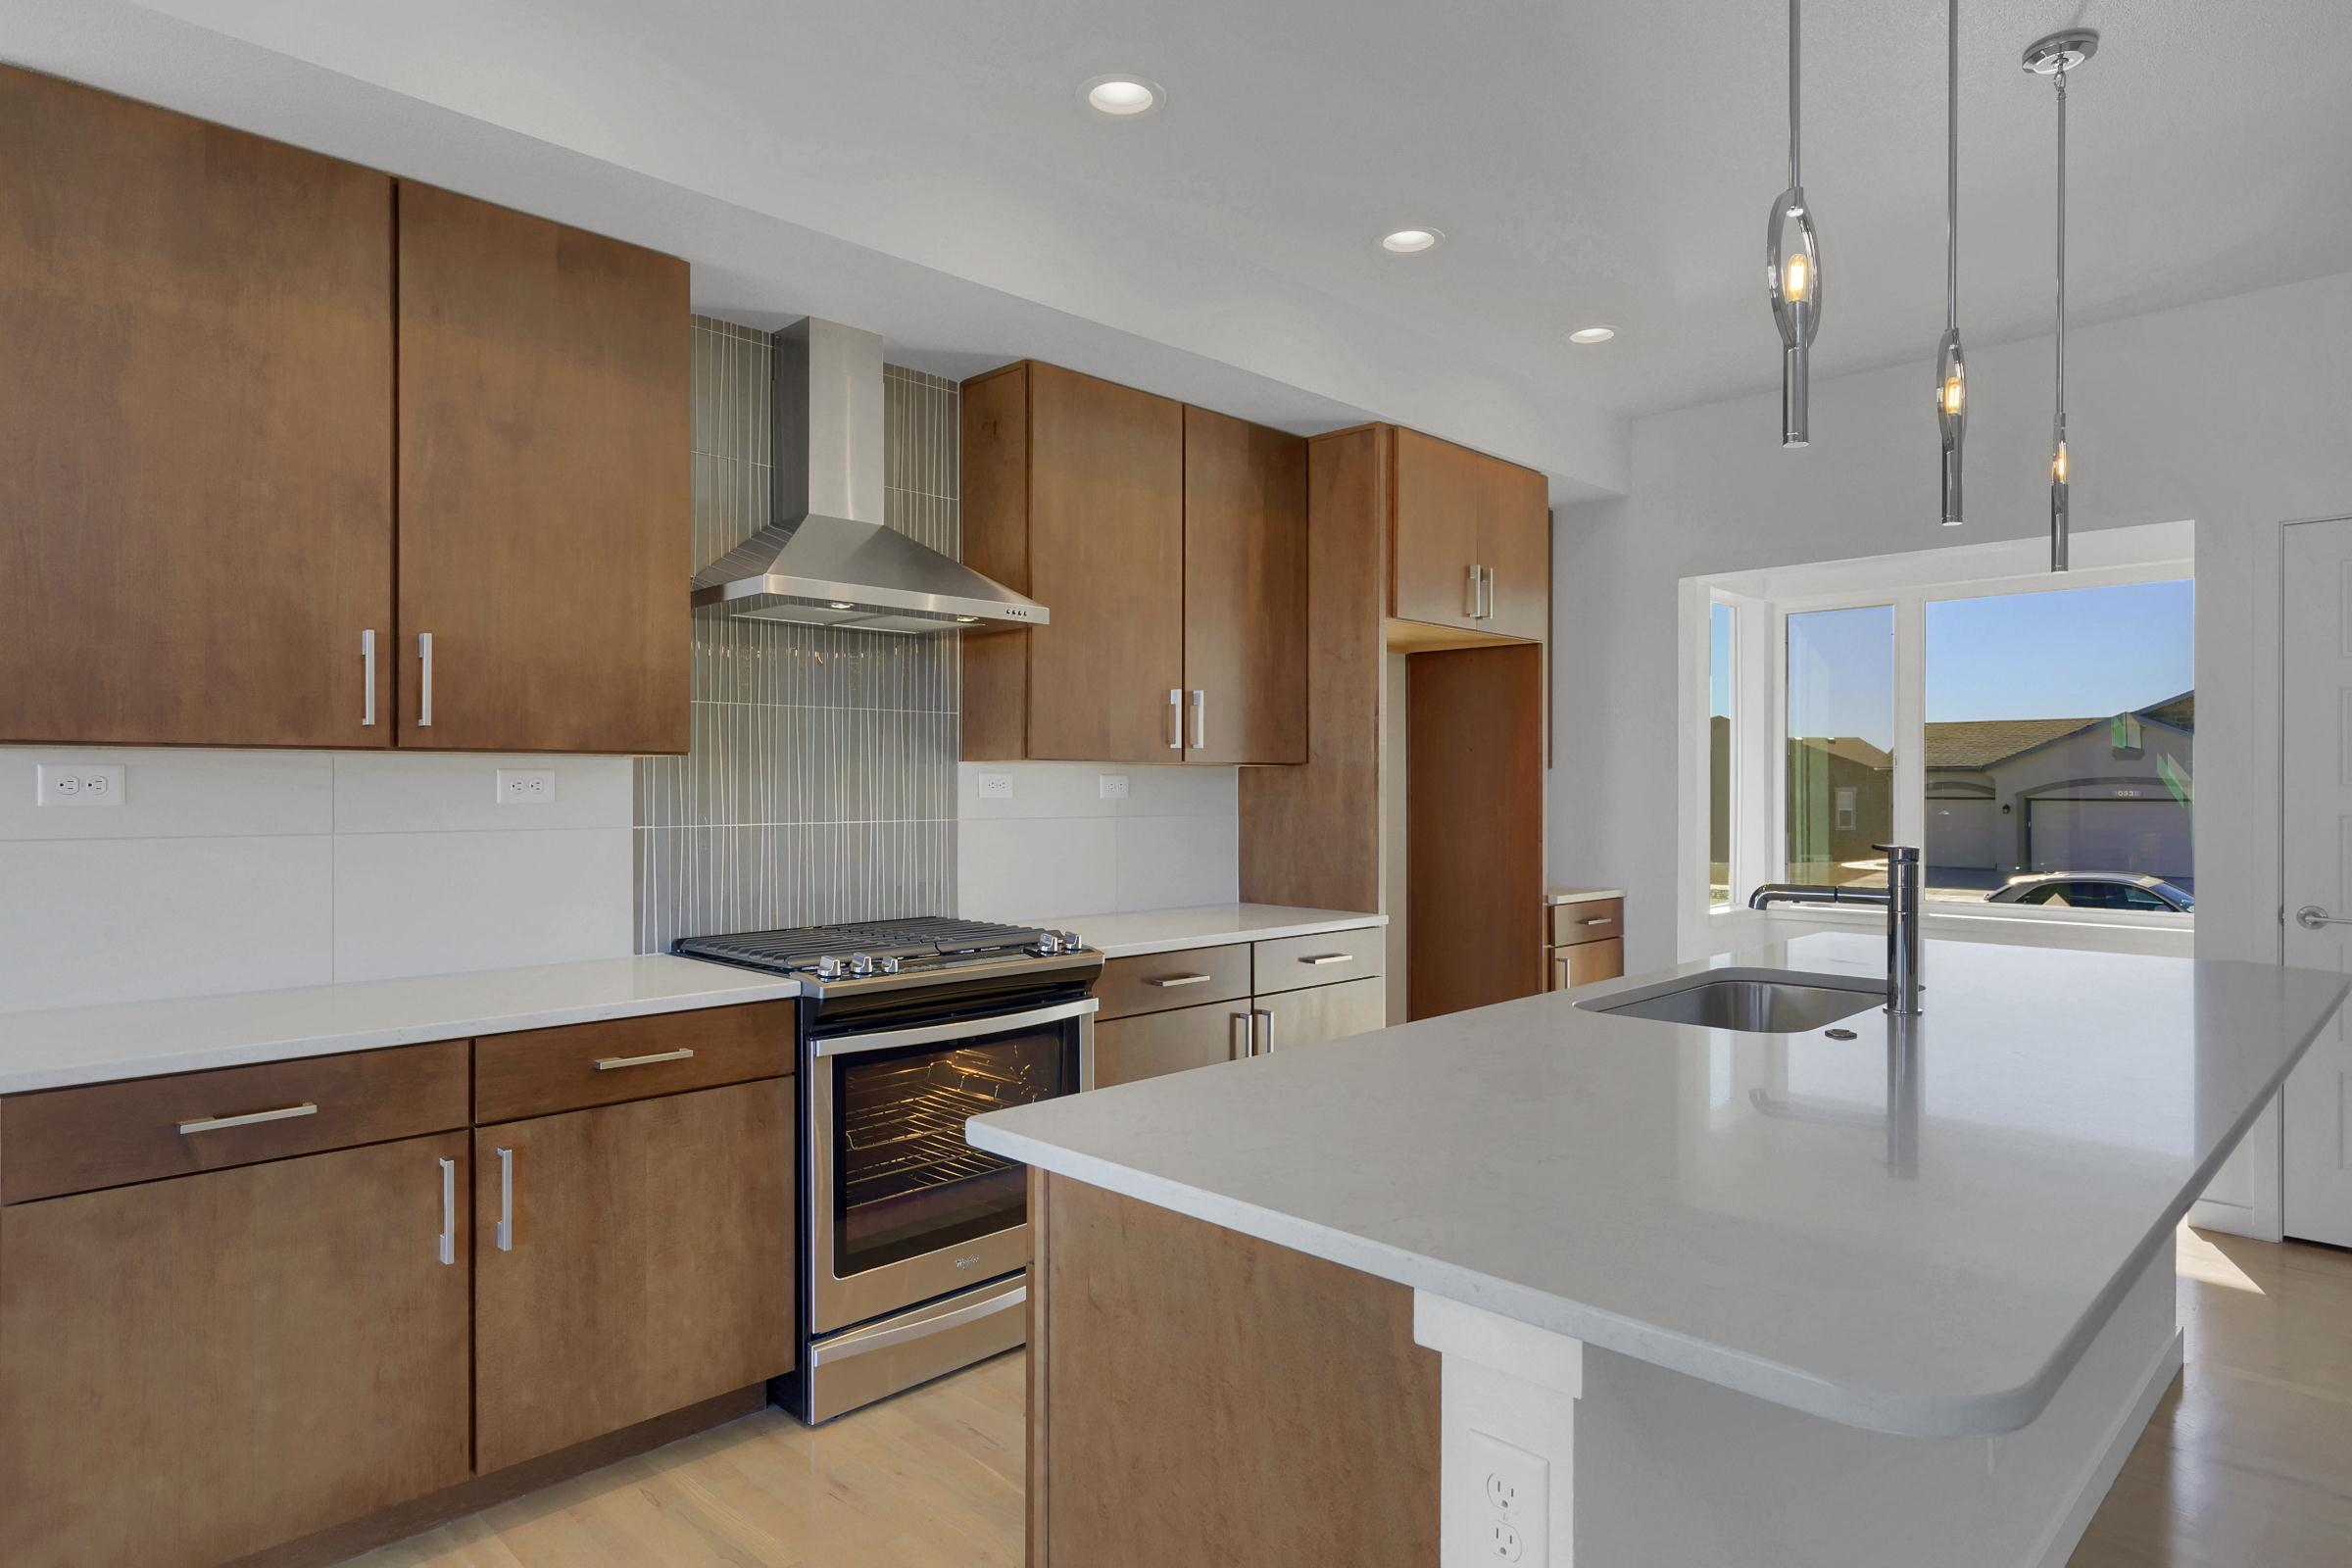 Kitchen featured in the Ellington By Keller Homes, A Toll Bros. Co. in Colorado Springs, CO